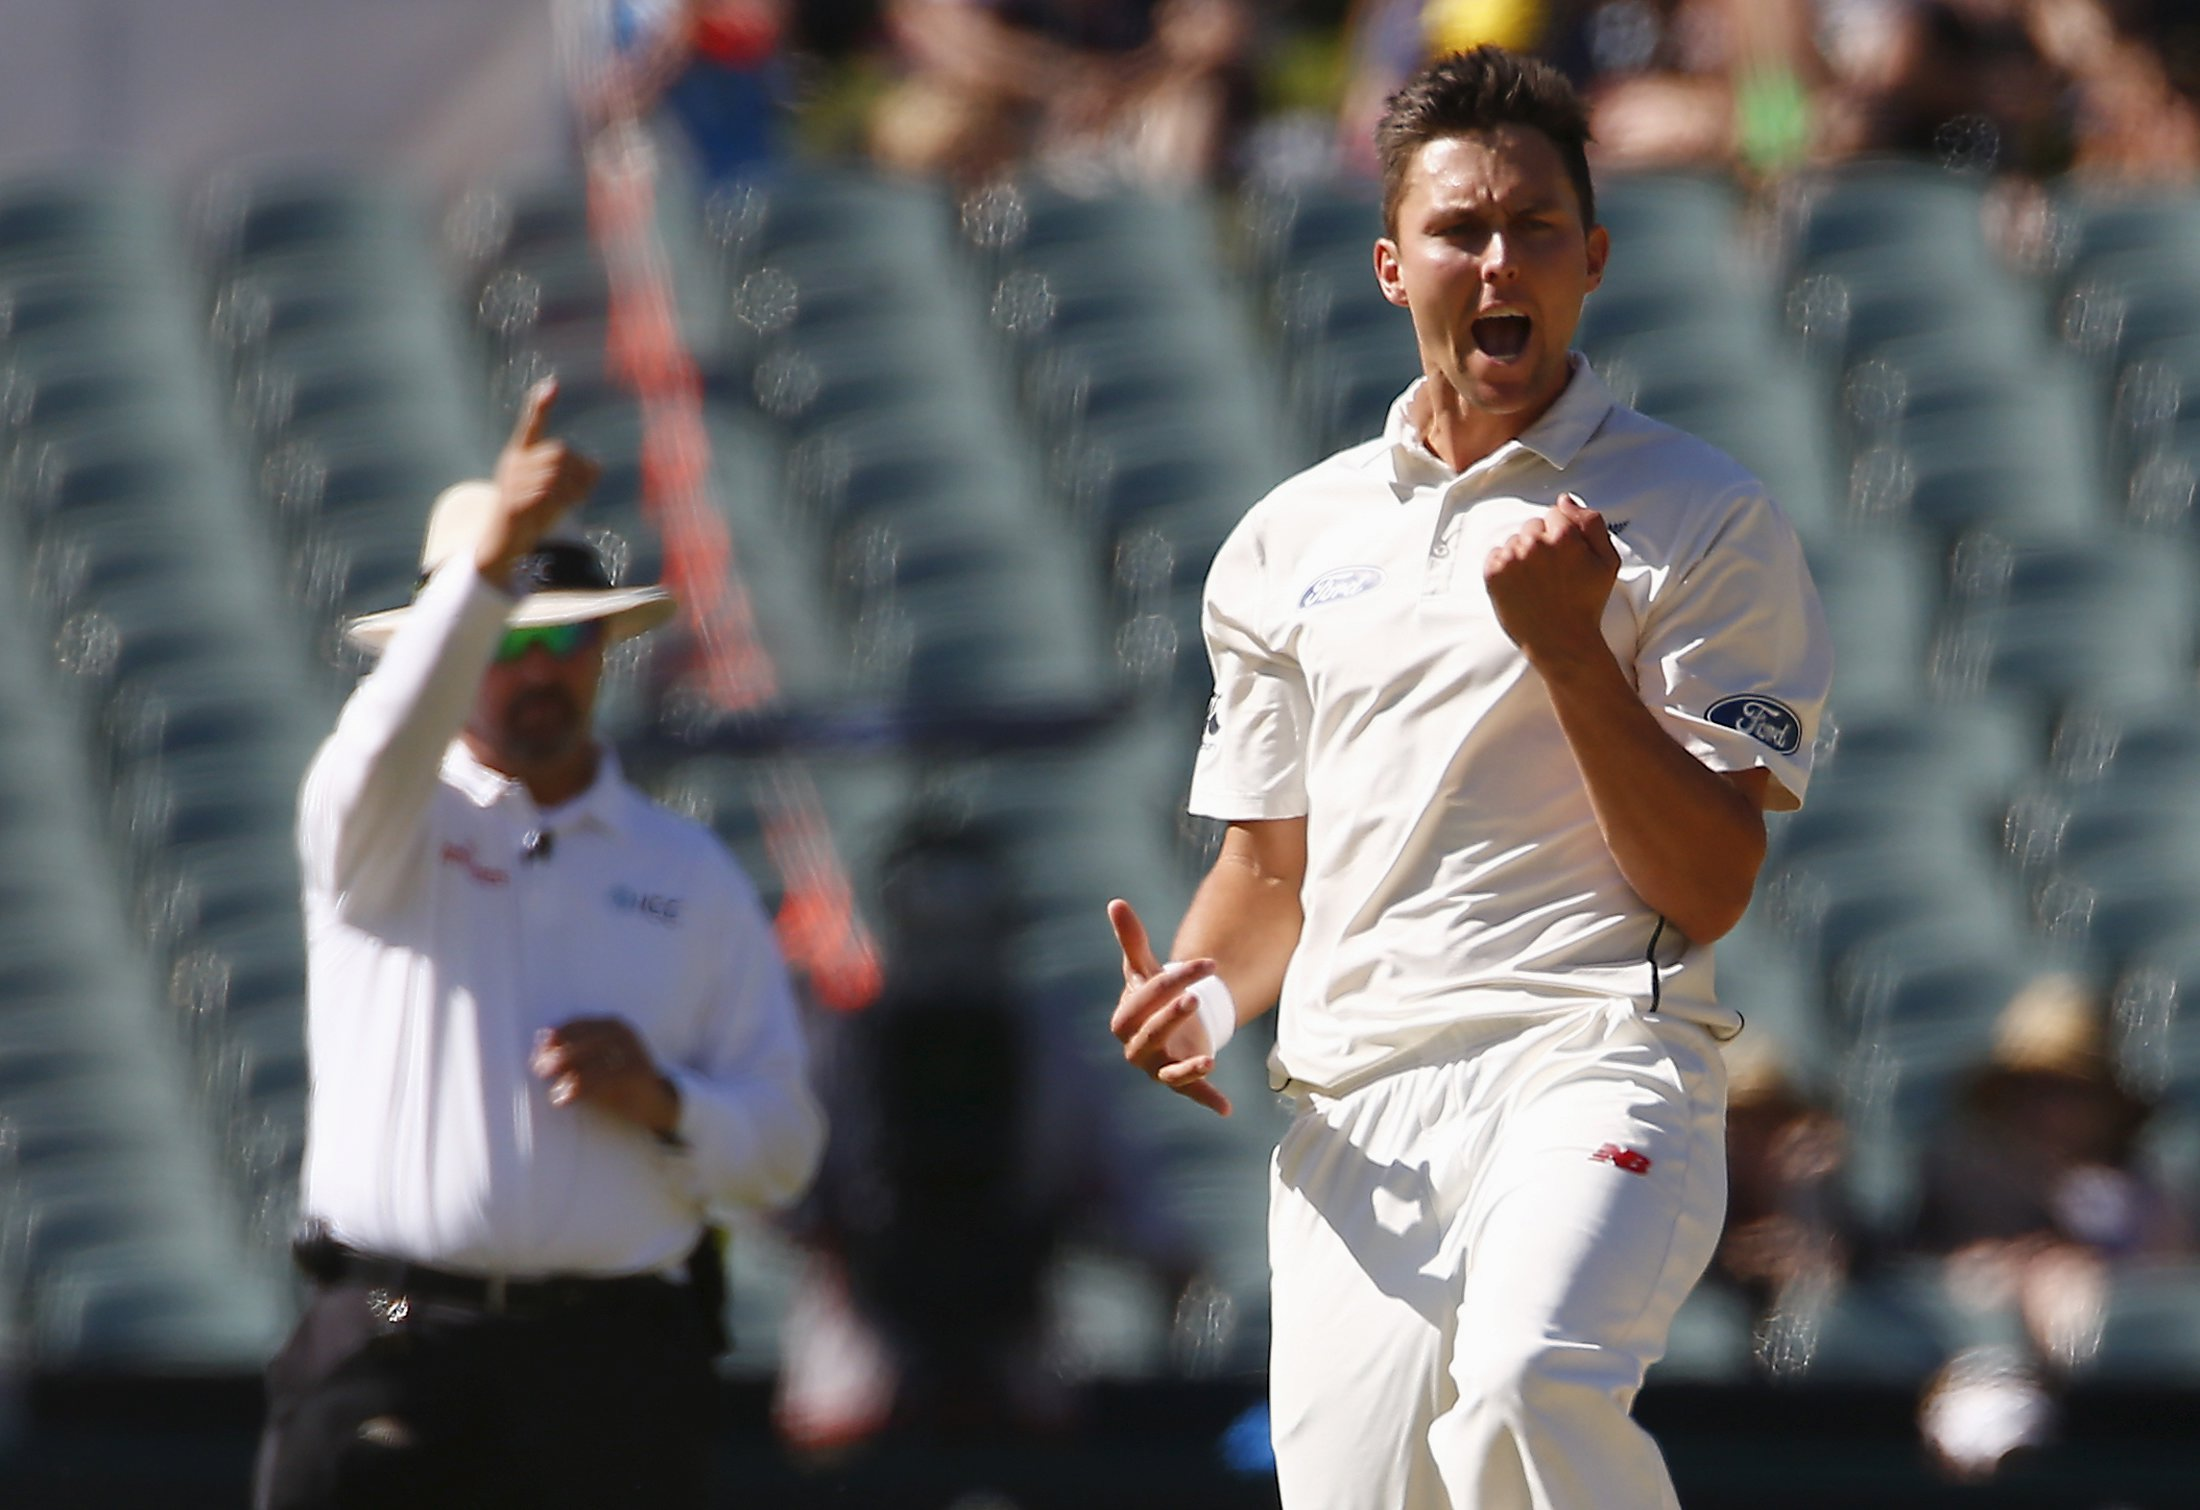 New Zealand's Trent Boult (right) celebrates as umpire Richard Illingworth gives Australia's Joe Burns out LBW for 11 runs during the third day of the third cricket test match at the Adelaide Oval, in South Australia, November 29, 2015. Photo: Reuters